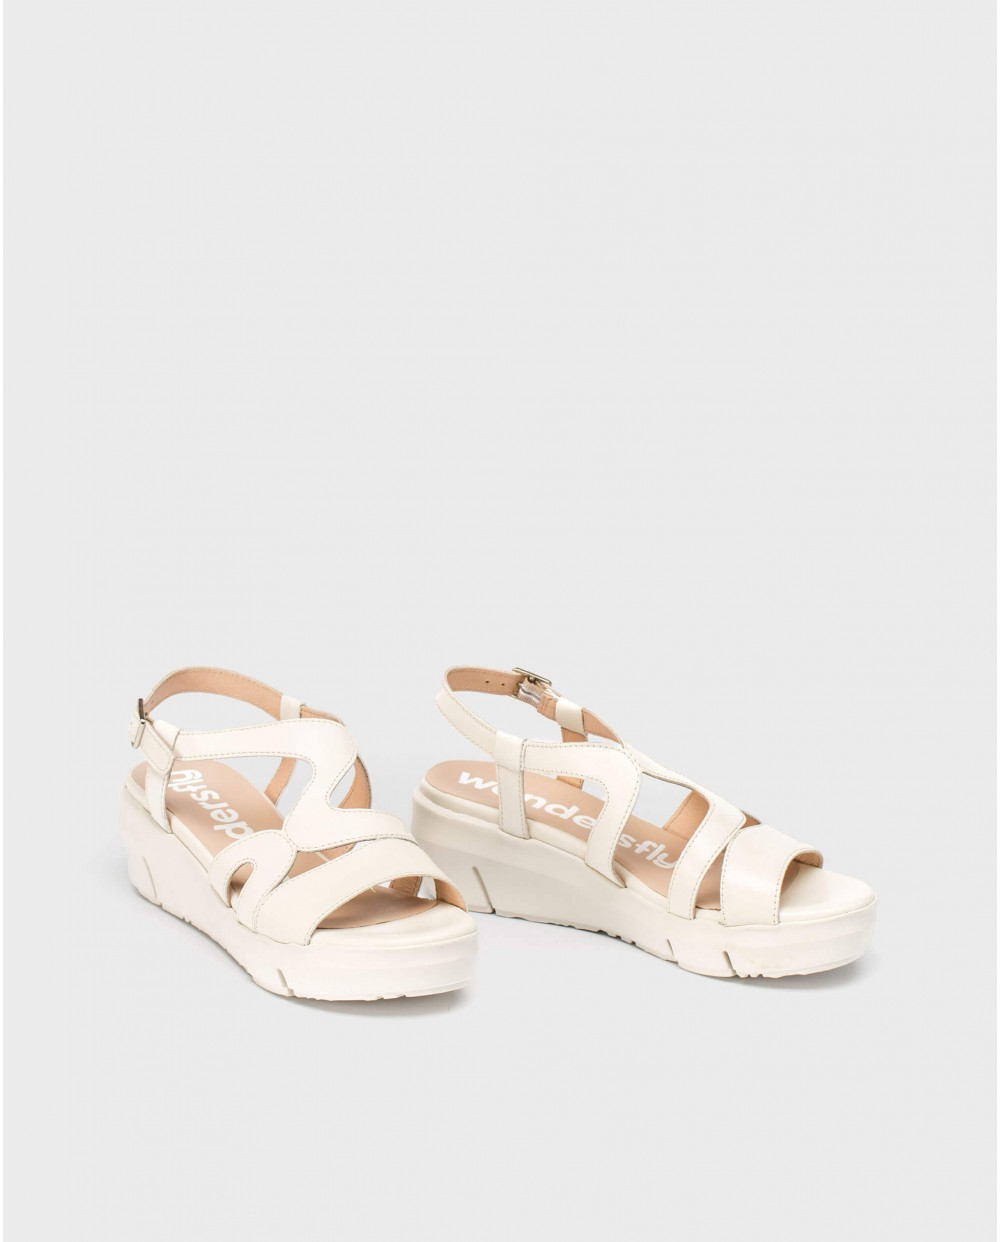 Wonders-Sandals-Leather strappy sandal